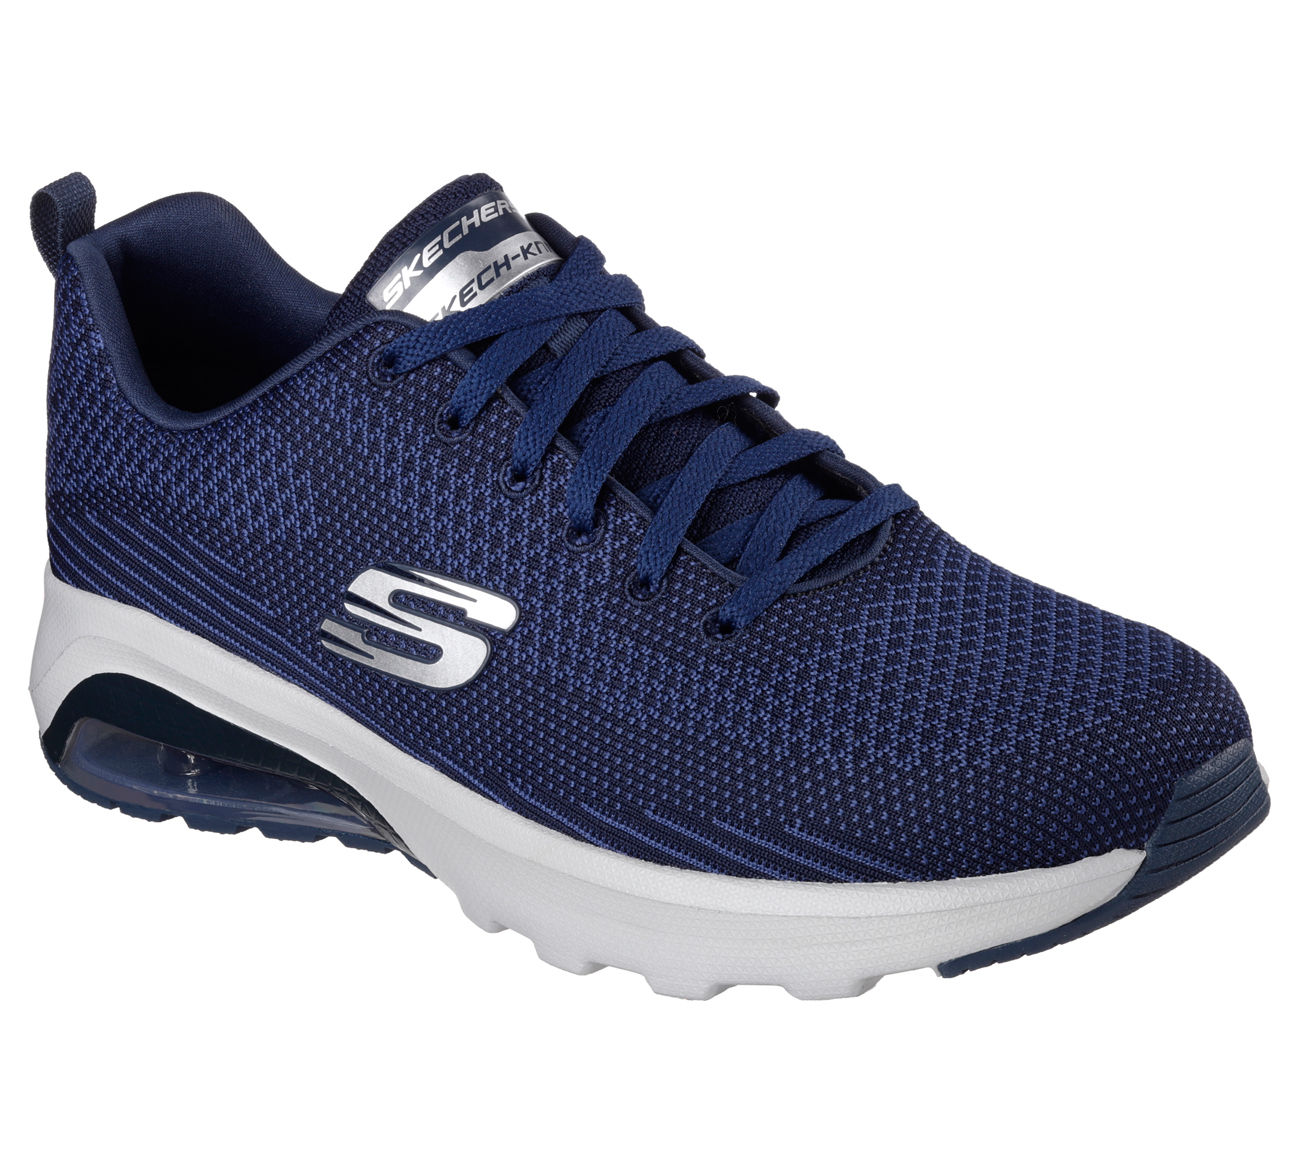 Skechers shoes are popular with men, women and children alike, and it's easy to see why! Skechers are renowned for packing their shoes full of technology; from super-breathable fabric to the most flexible and supportive soles around. They're designed to keep .